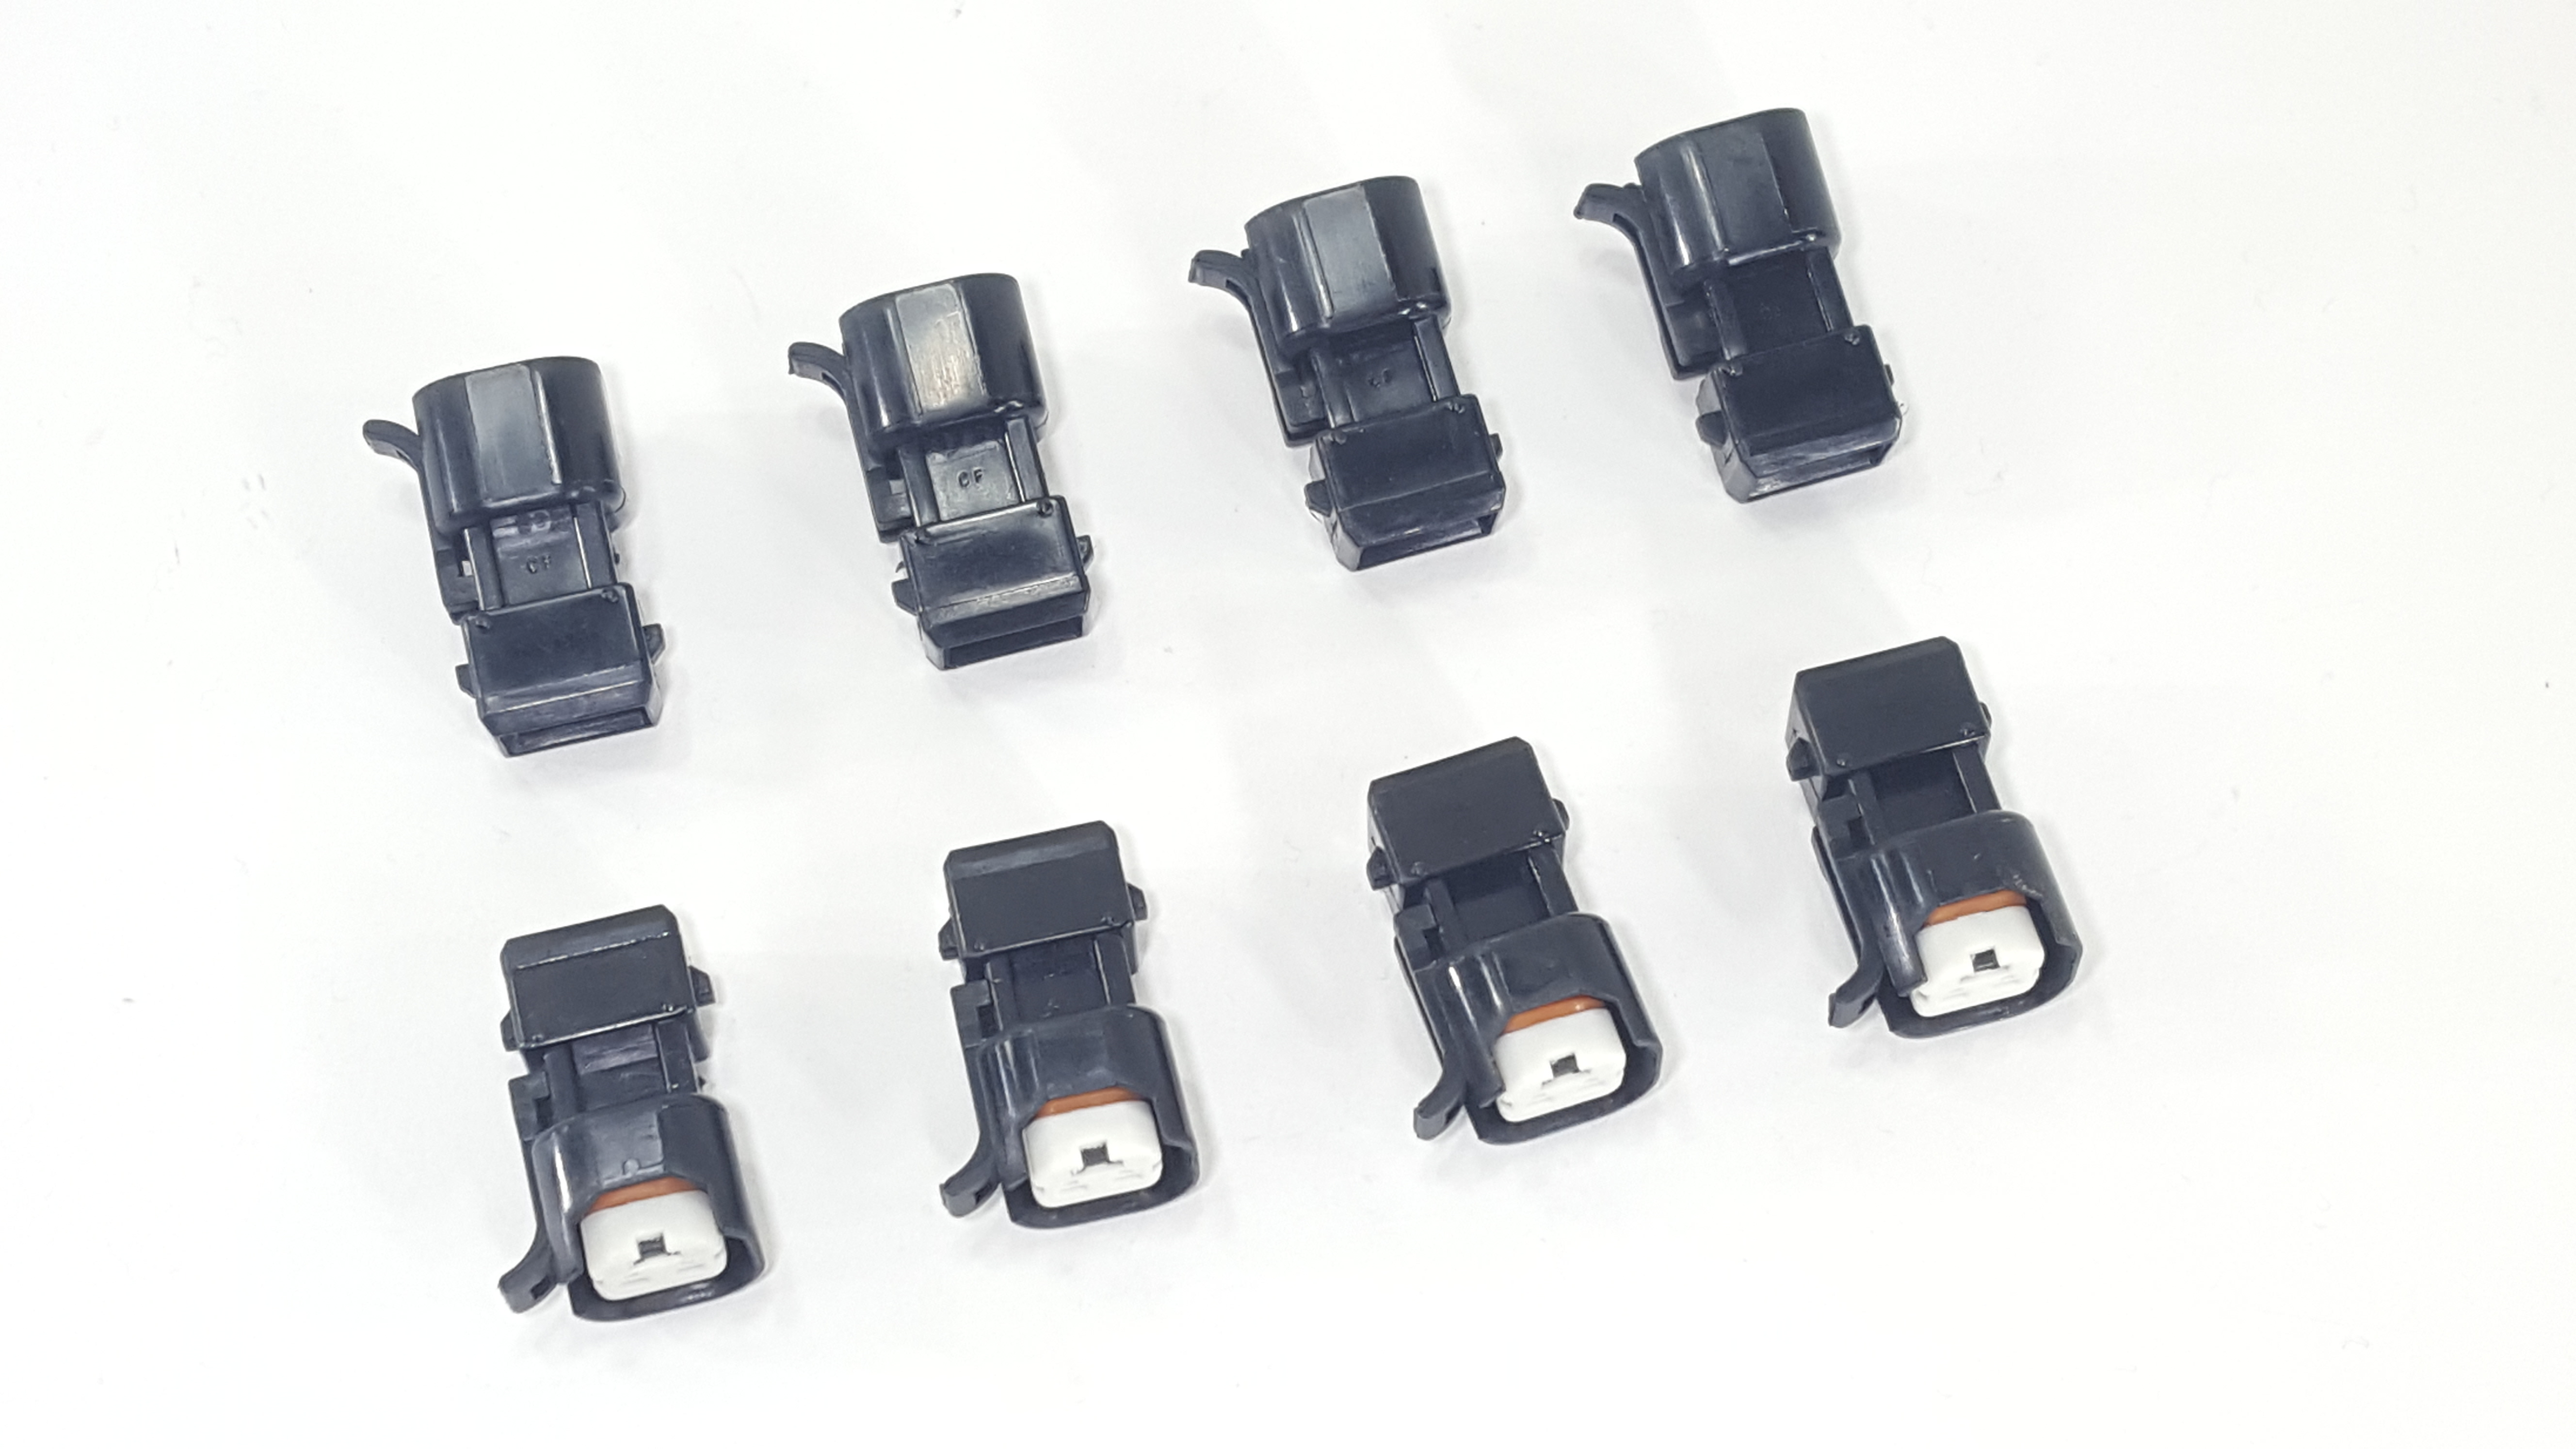 EV1 to EV6 Injector Adapters - LS1 harness to LS2 LS3 USCAR style Injectors